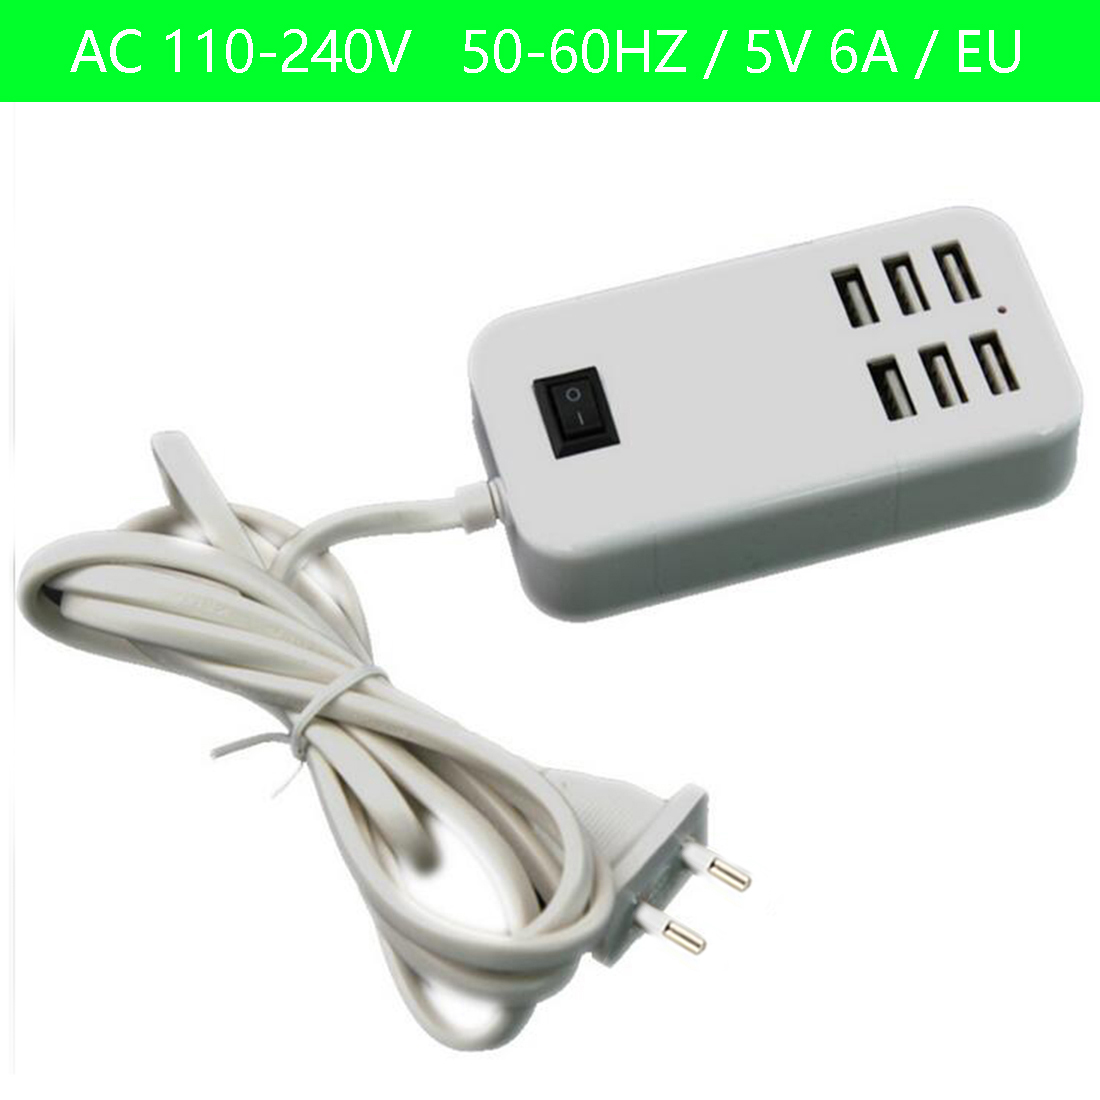 EU/ US/ UK Plug Home Travel Charger Wall <font><b>Power</b></font> <font><b>Adapter</b></font> 6 Ports <font><b>USB</b></font> Socket Hub +1 Switch For iPhone/Samsung/HTC/LG/iPod image